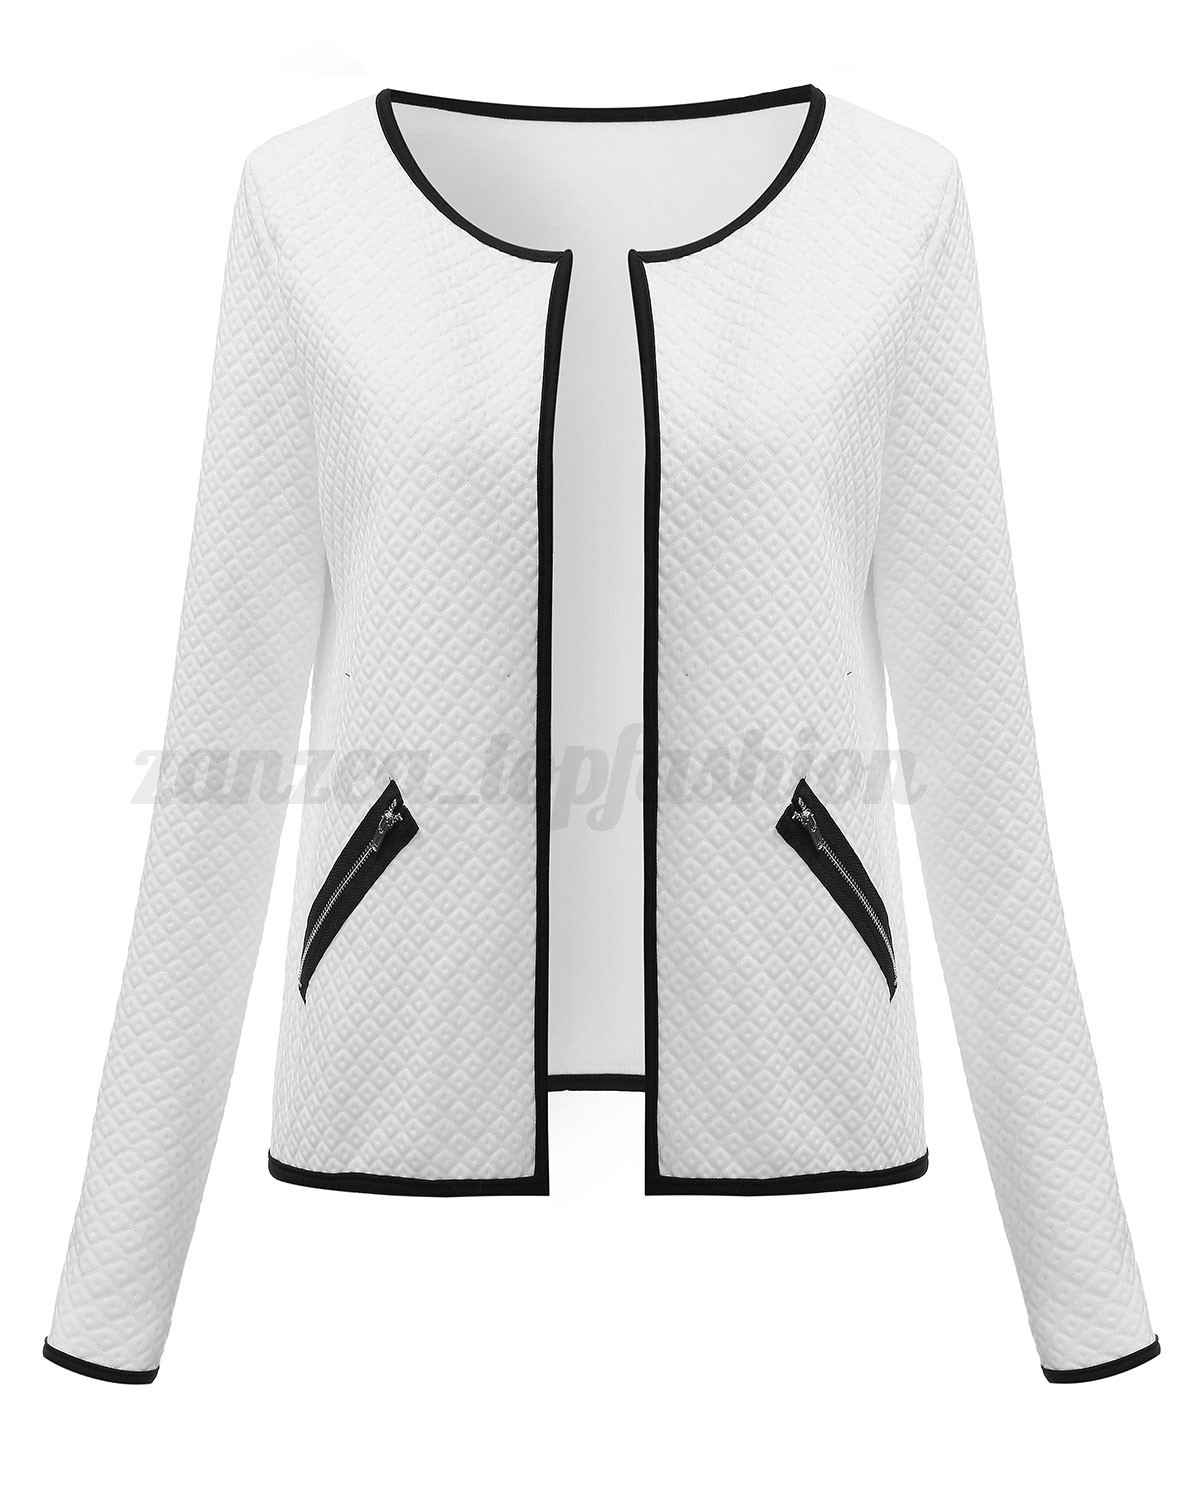 Women Lady Fashion Office OL Casual Long Sleeve Cardigan Coat Jacket Top Blouse